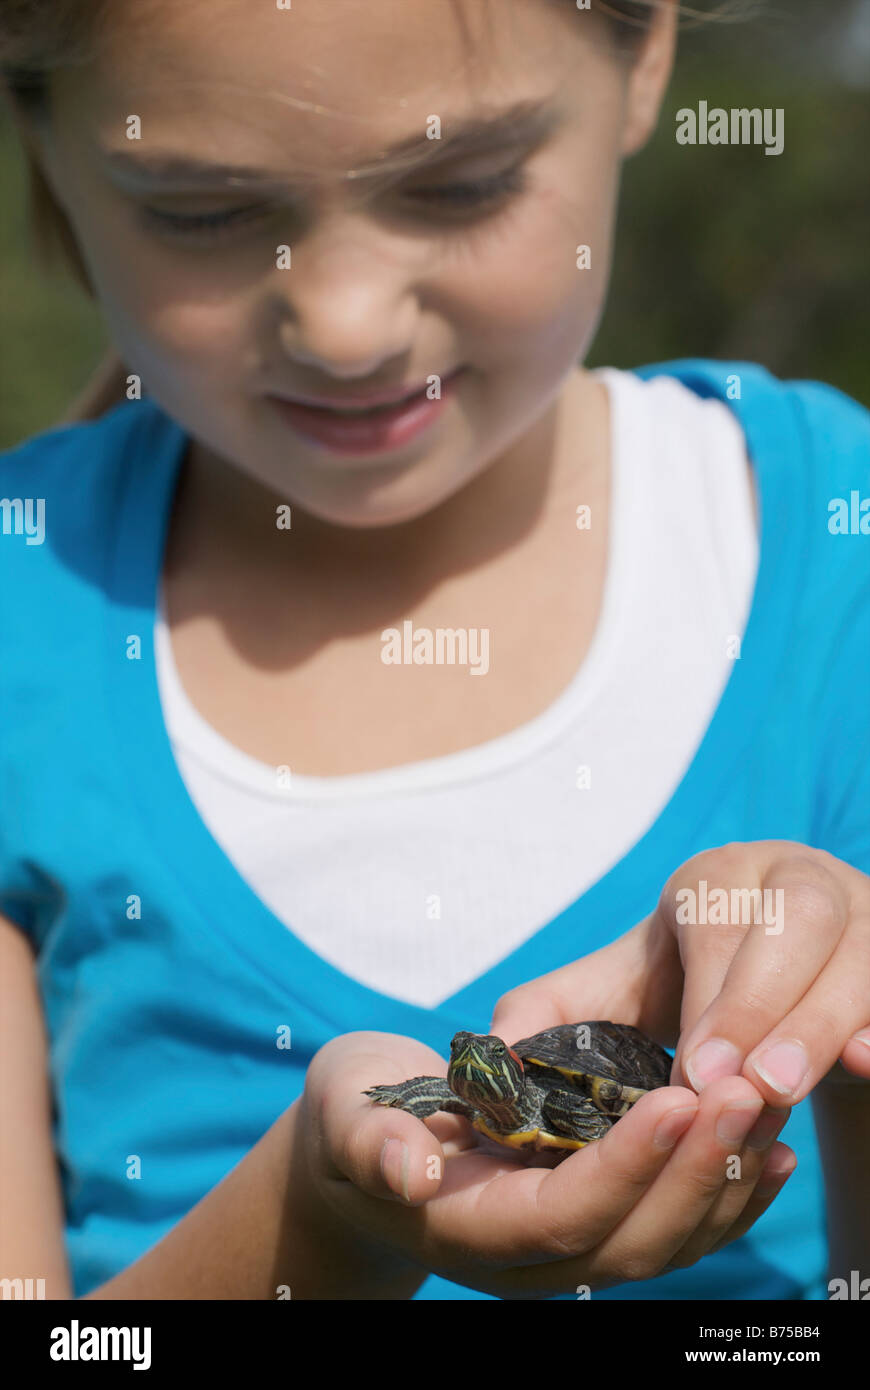 Eight year old girl with turtle, Winnipeg, Canada - Stock Image